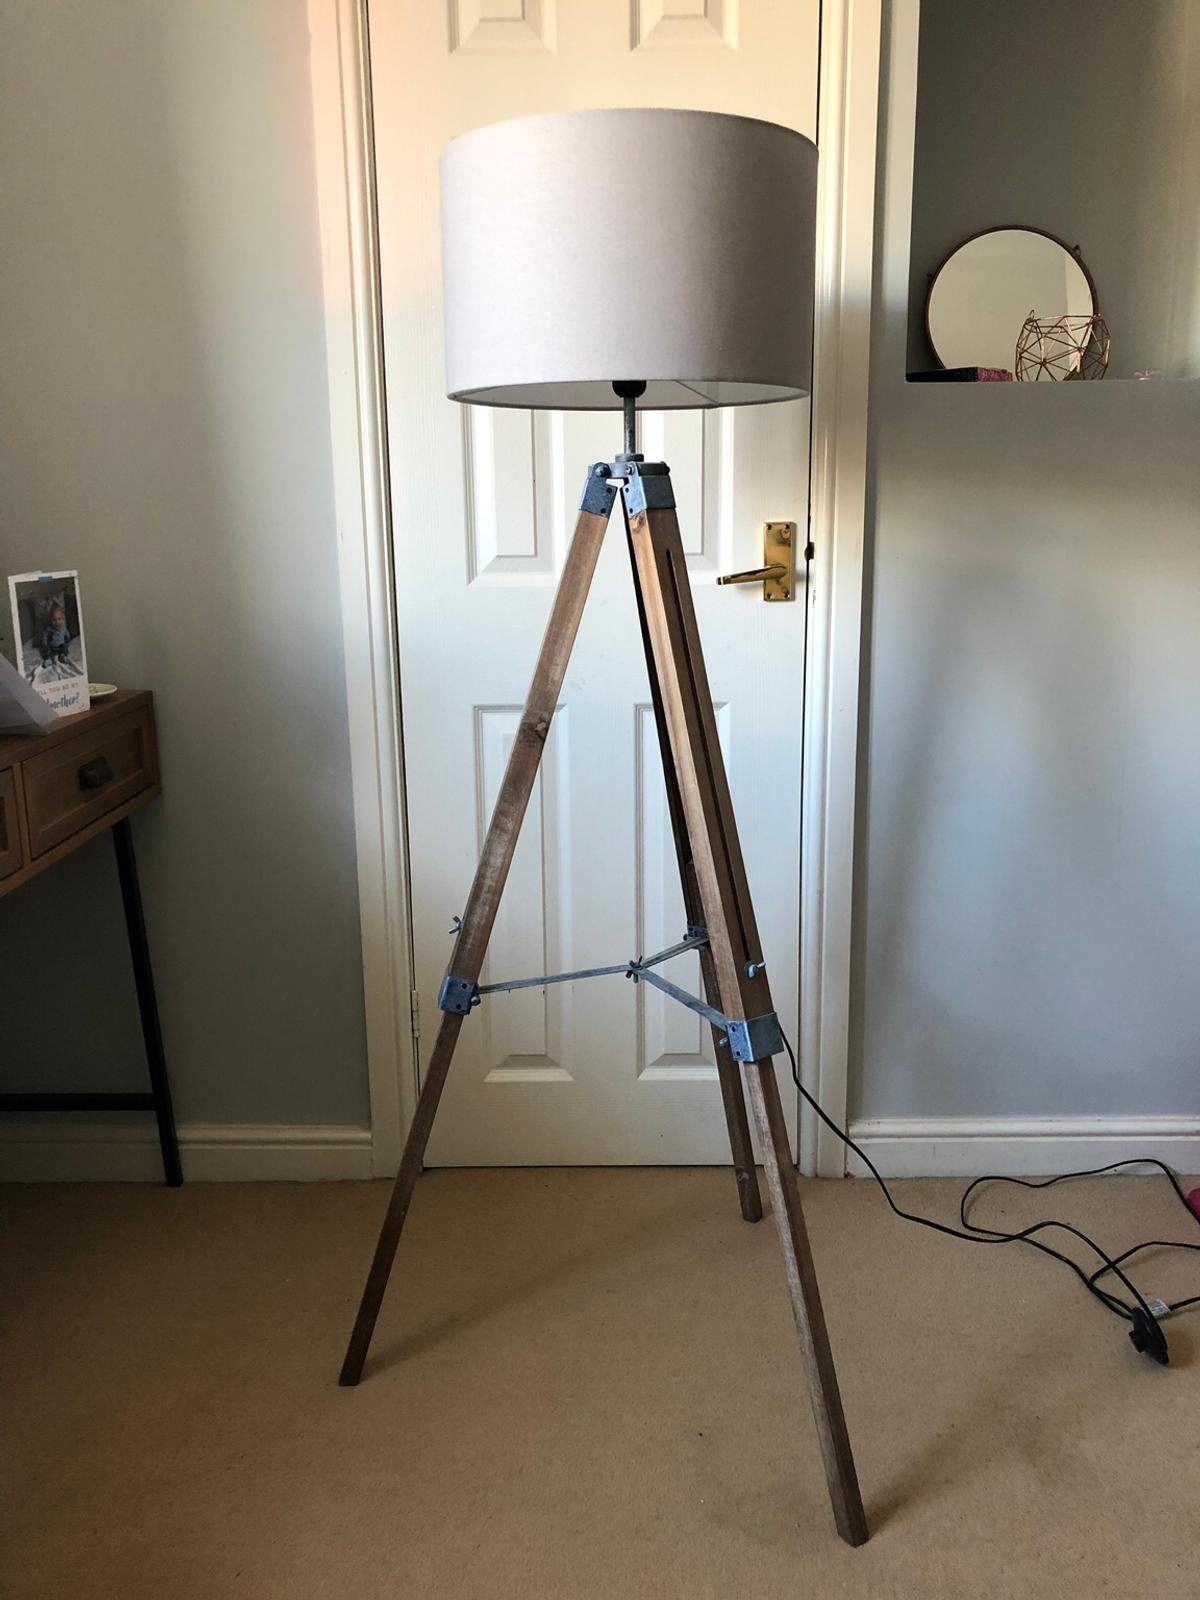 Buy Alpine Tripod Floor Lamp from the